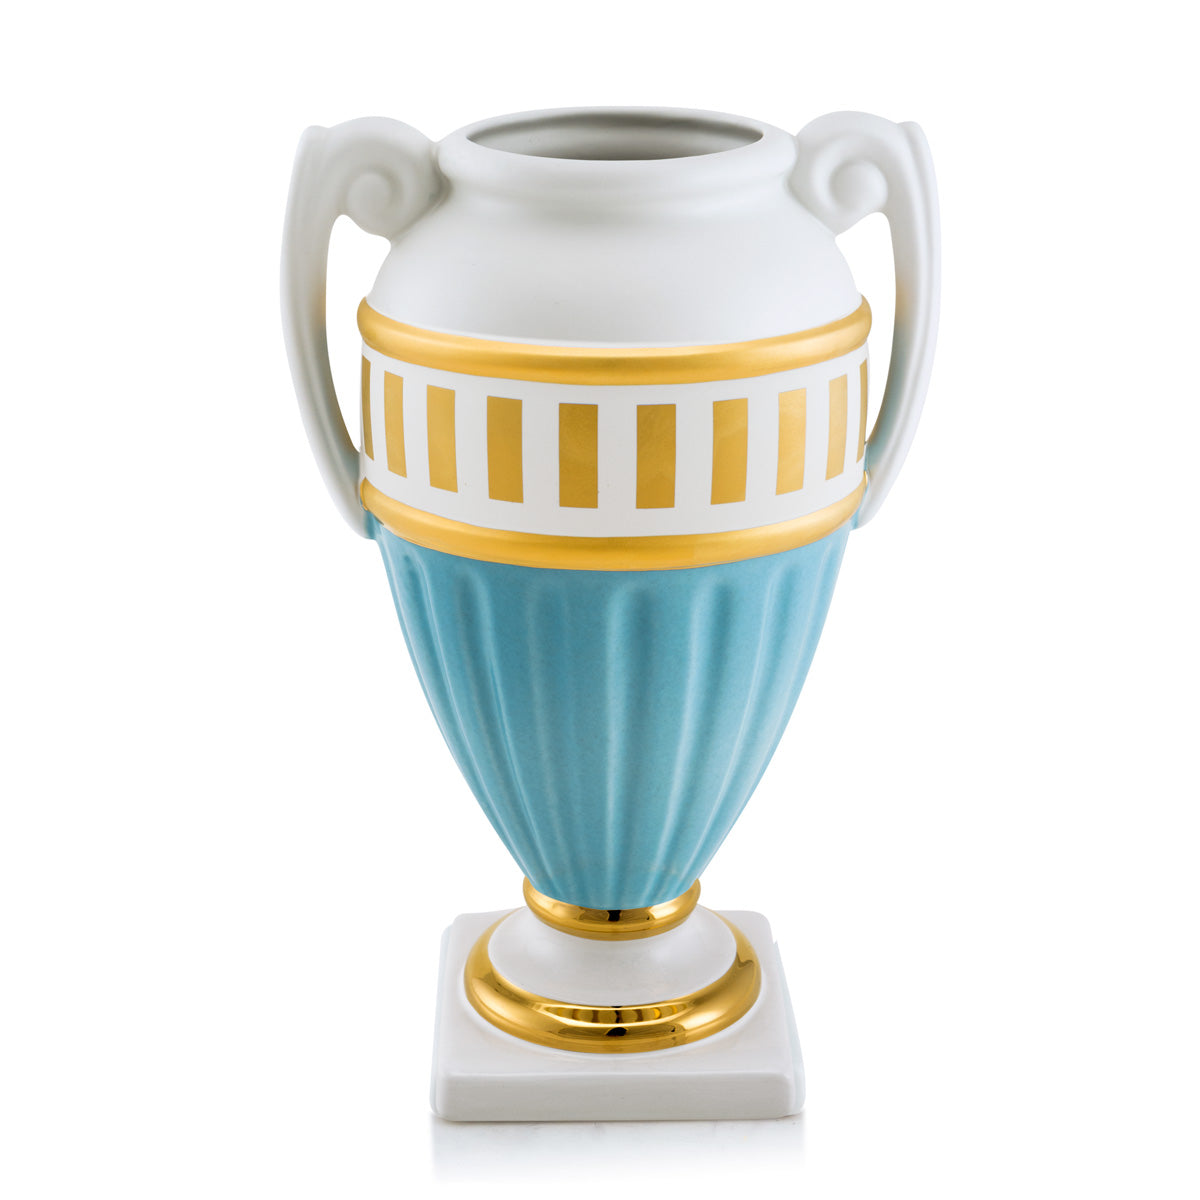 Ceramic vase with two handles | Arena